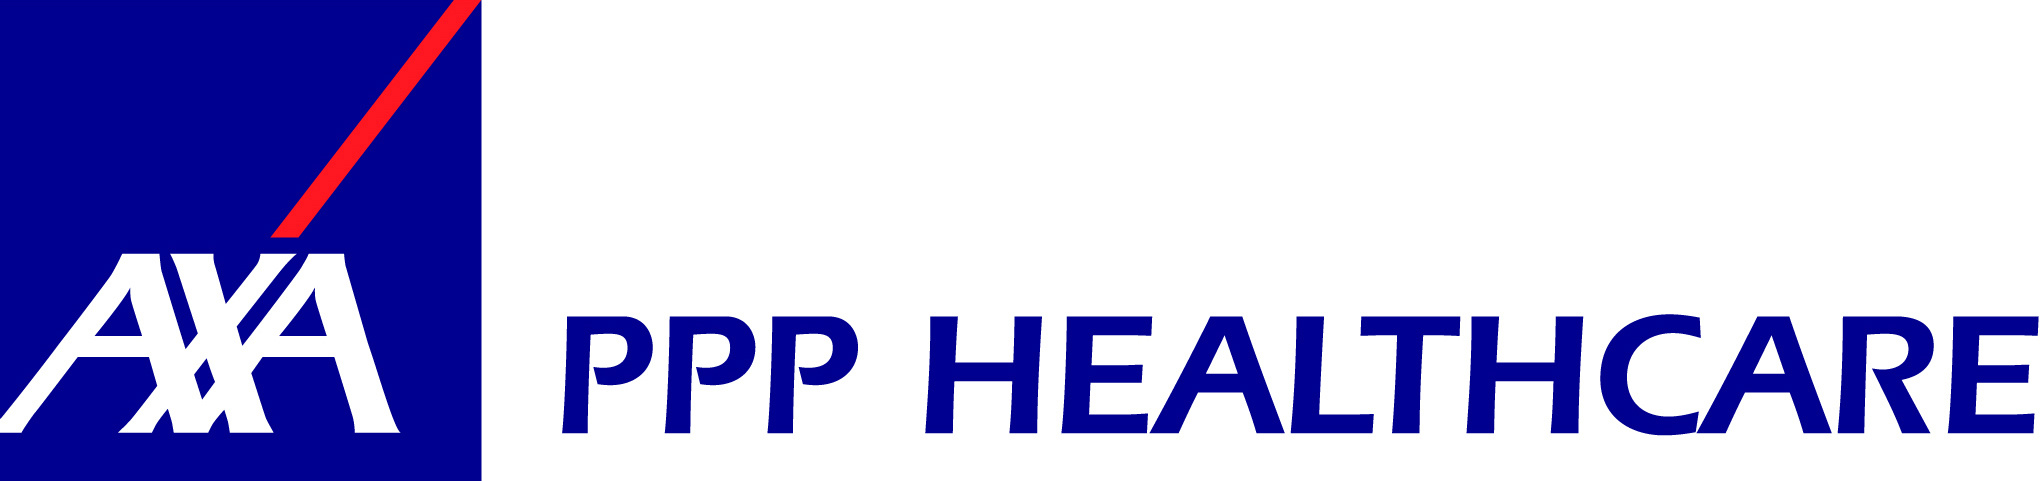 axa_ppp_healthcare_solid_rgb_latest_logo_nov_2019_2040_02